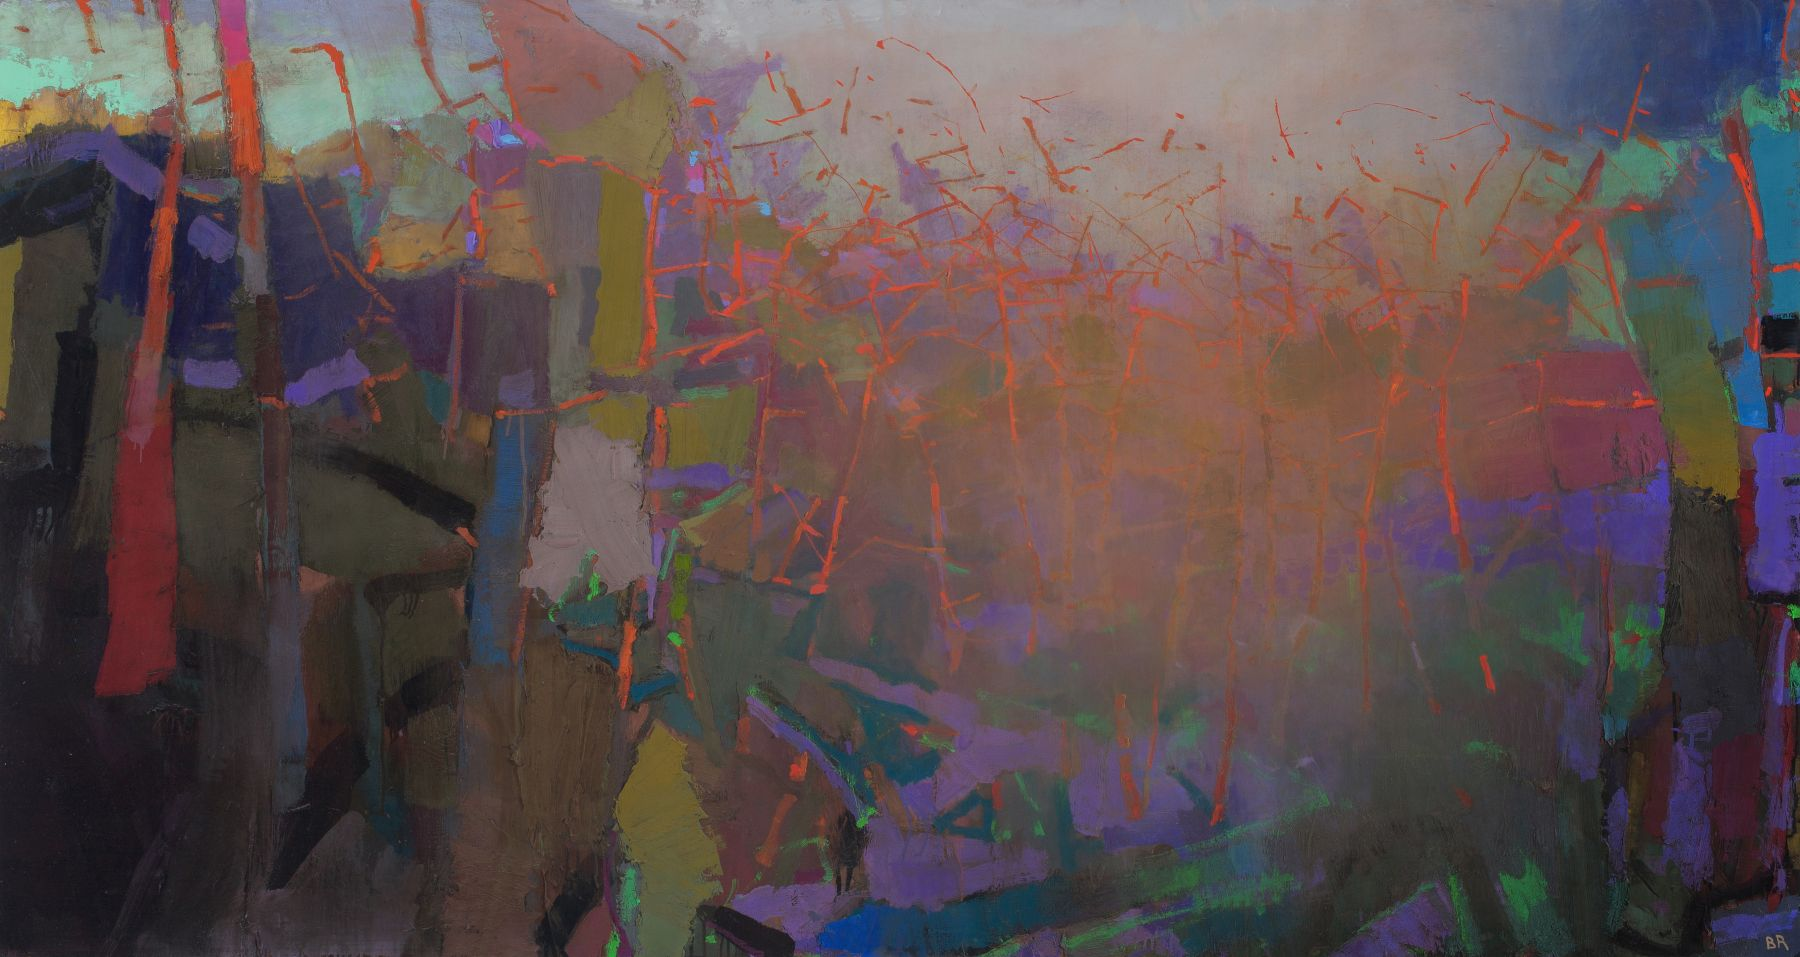 brian rutenberg, Clover, 2013-14, oil on linen, 48 x 90 inches